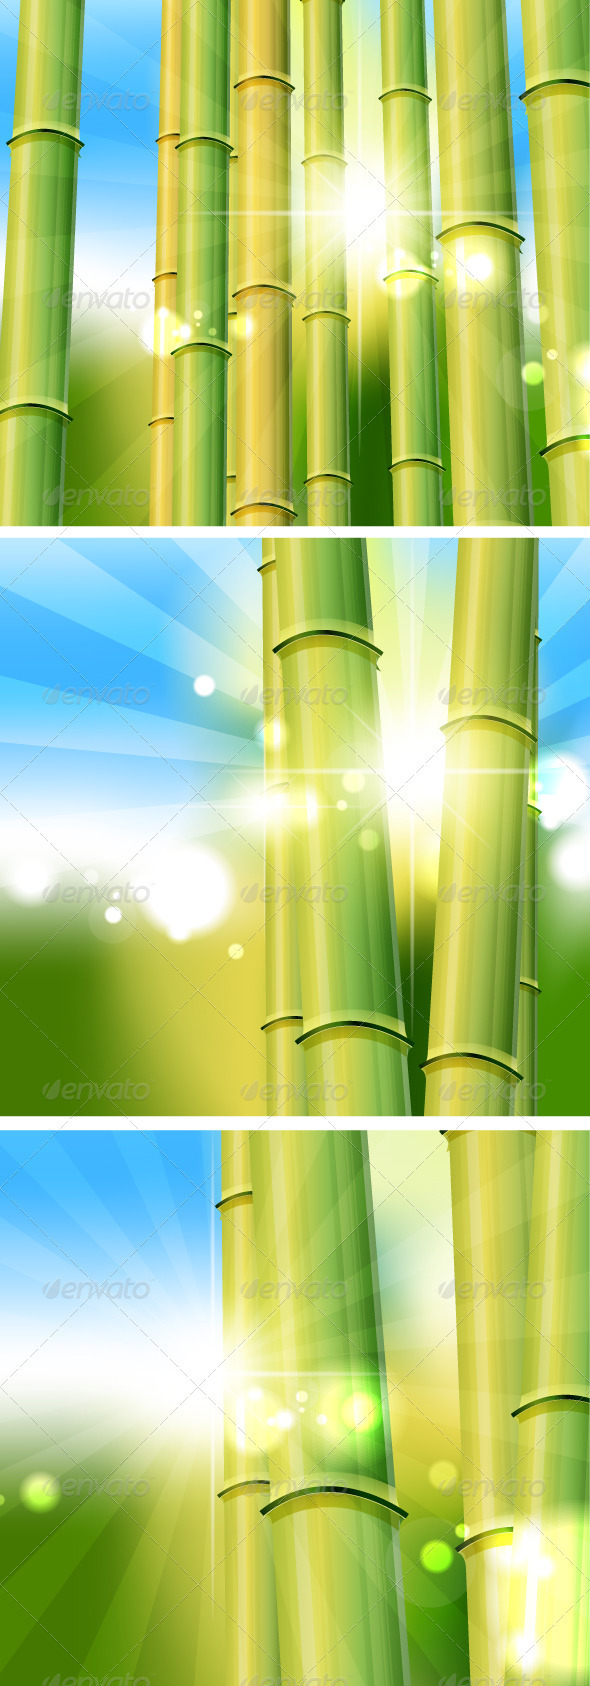 Bamboo Sunny Scenery - Flowers & Plants Nature